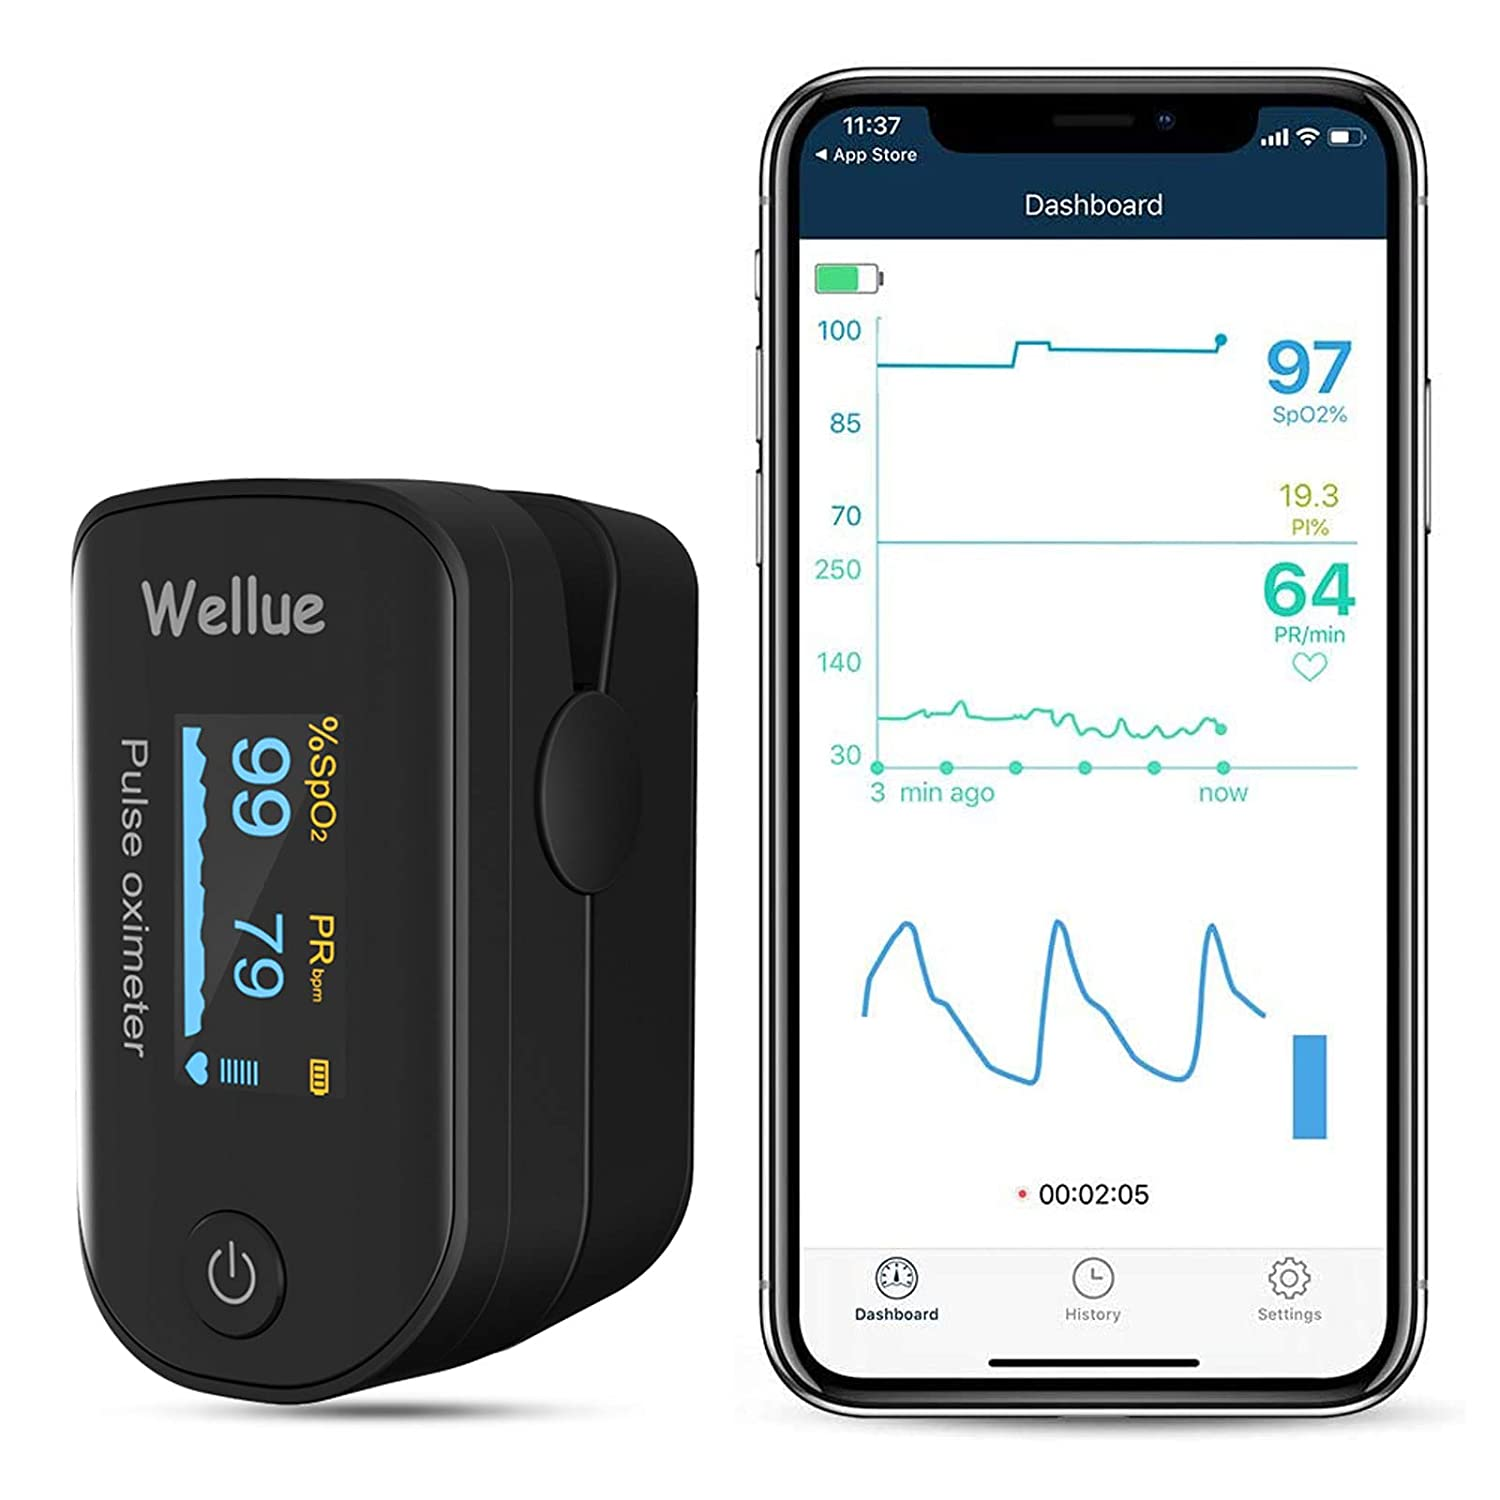 Wellue Fingertip Pulse Oximeter, Blood Oxygen Saturation Monitor with Batteries for Wellness Use Bluetooth, Black